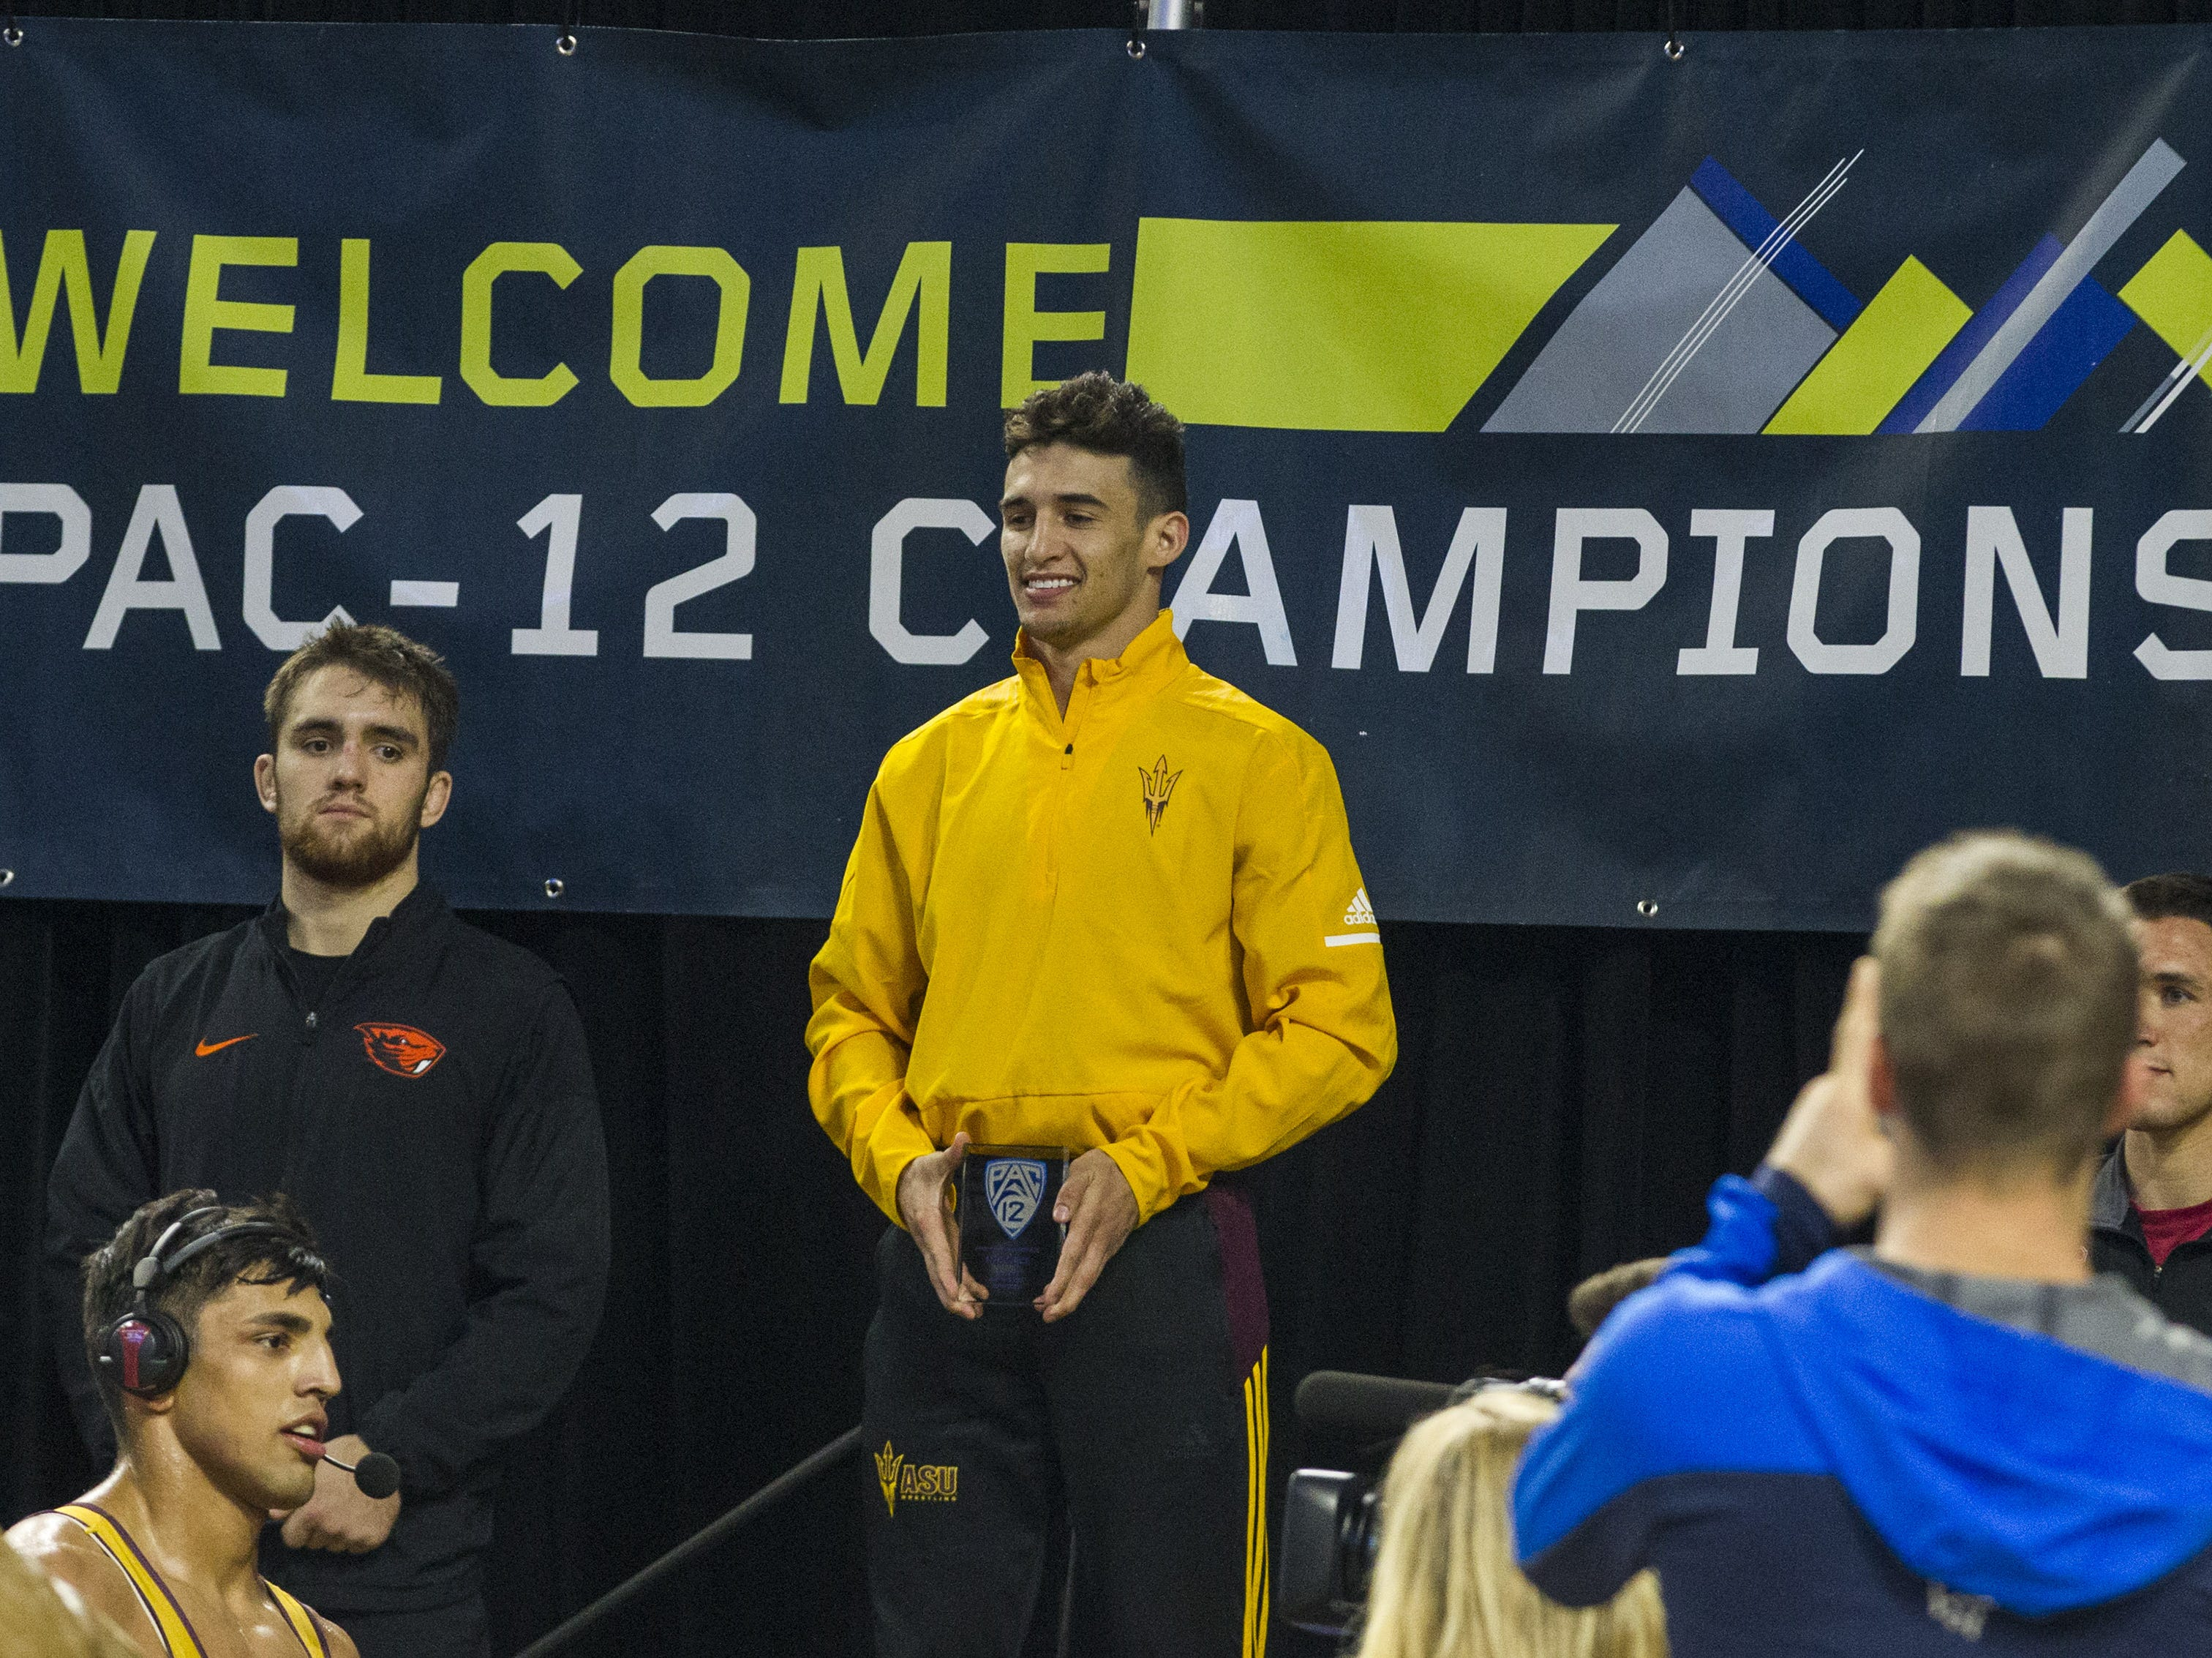 ASU's Christian Pagdilao receives his trophy for his win over Oregon State's Hunter Willits in the 157 pound weight class during the Pac 12 Wrestling Championship at Wells Fargo Arena in Tempe on March 9, 2019.